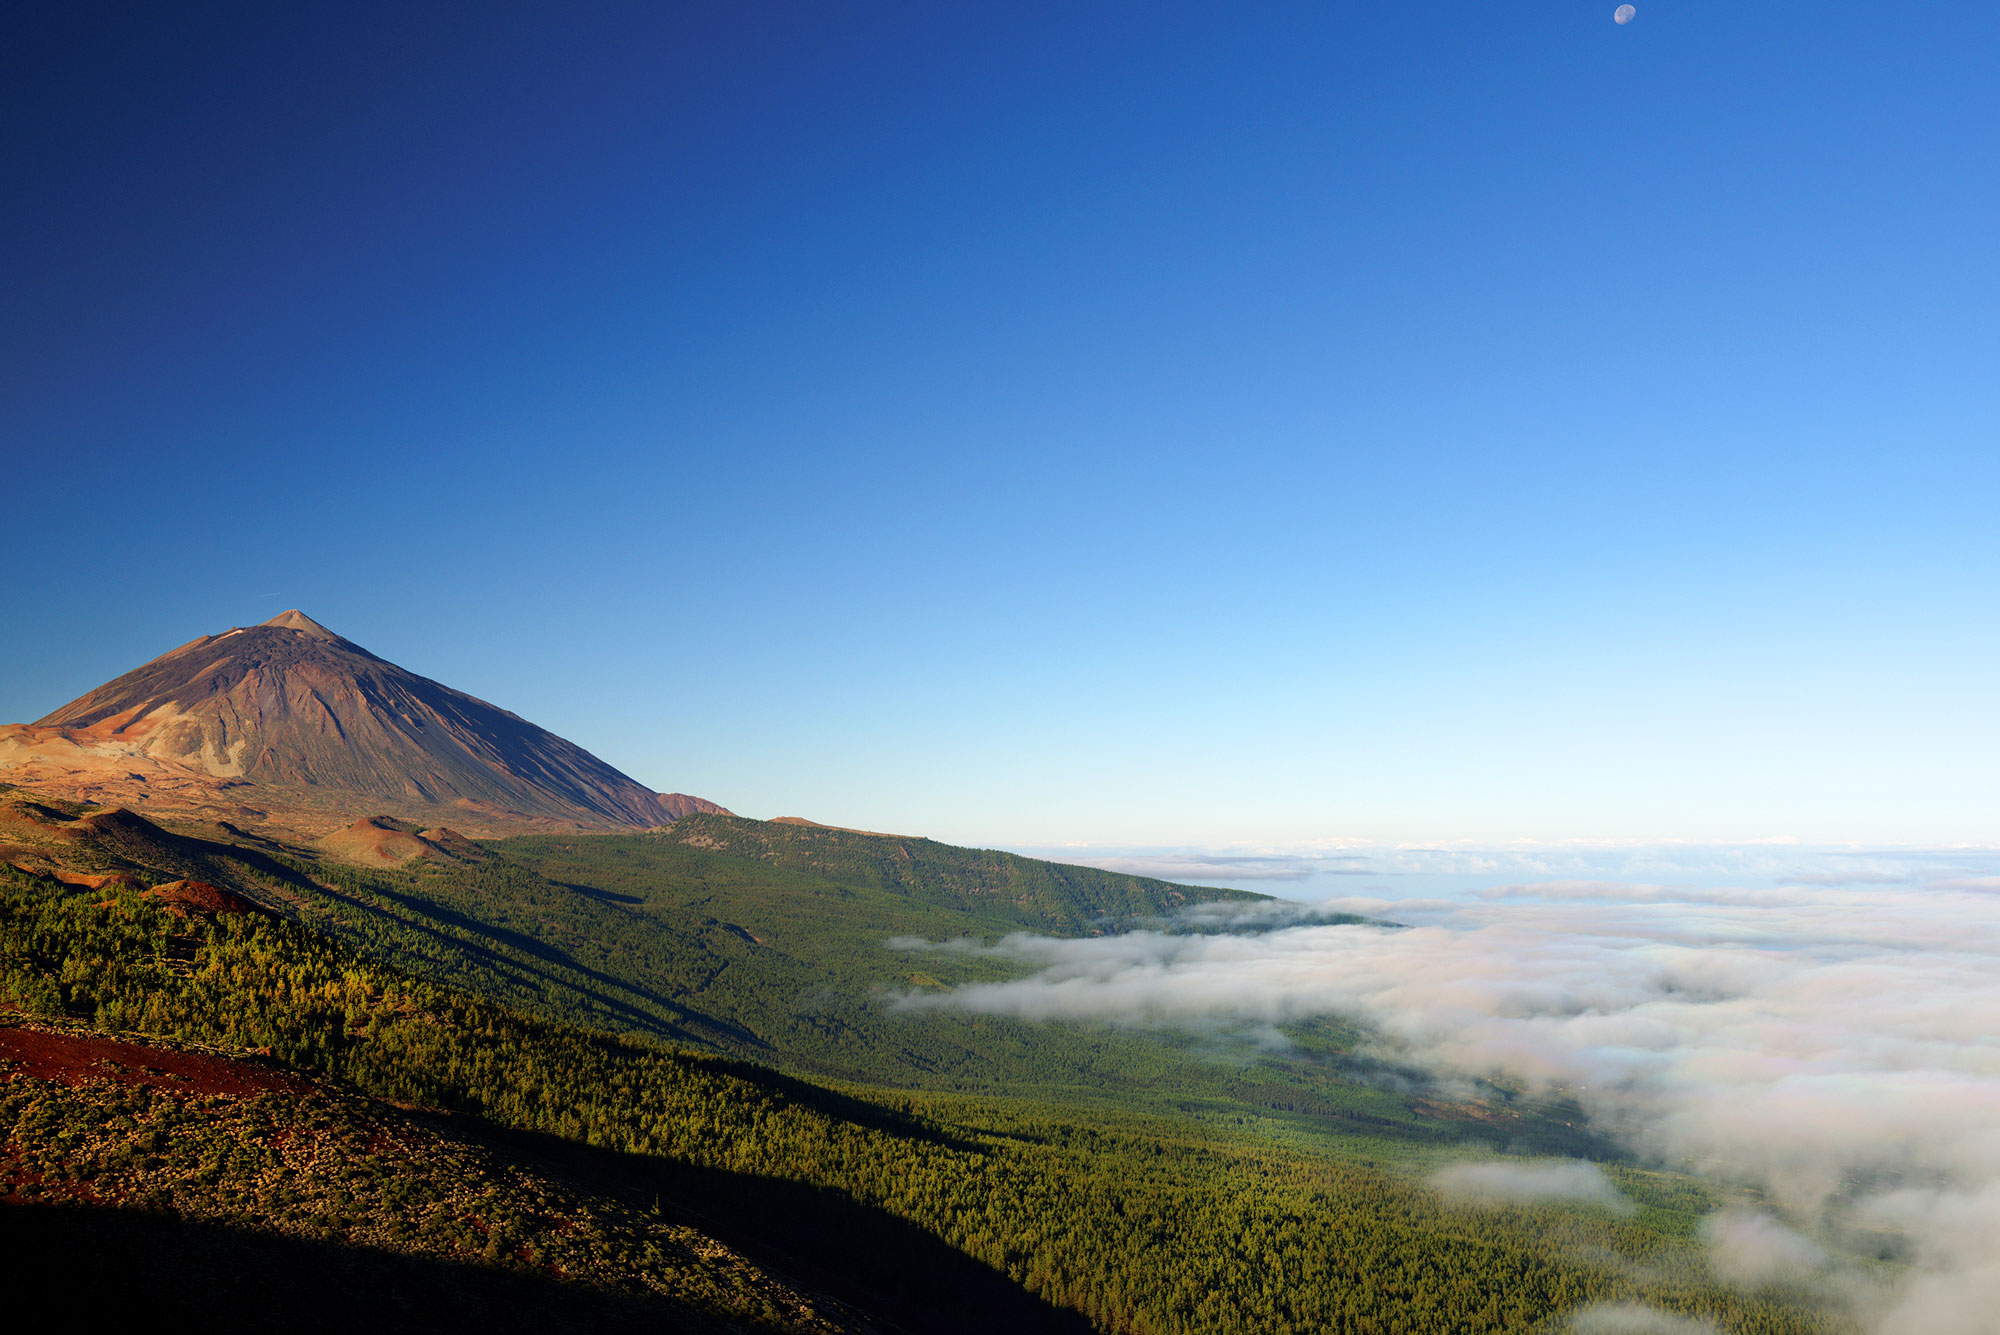 The Teide volcano on Tenerife overlooks a vast national park and some of Europe's highest vineyards.